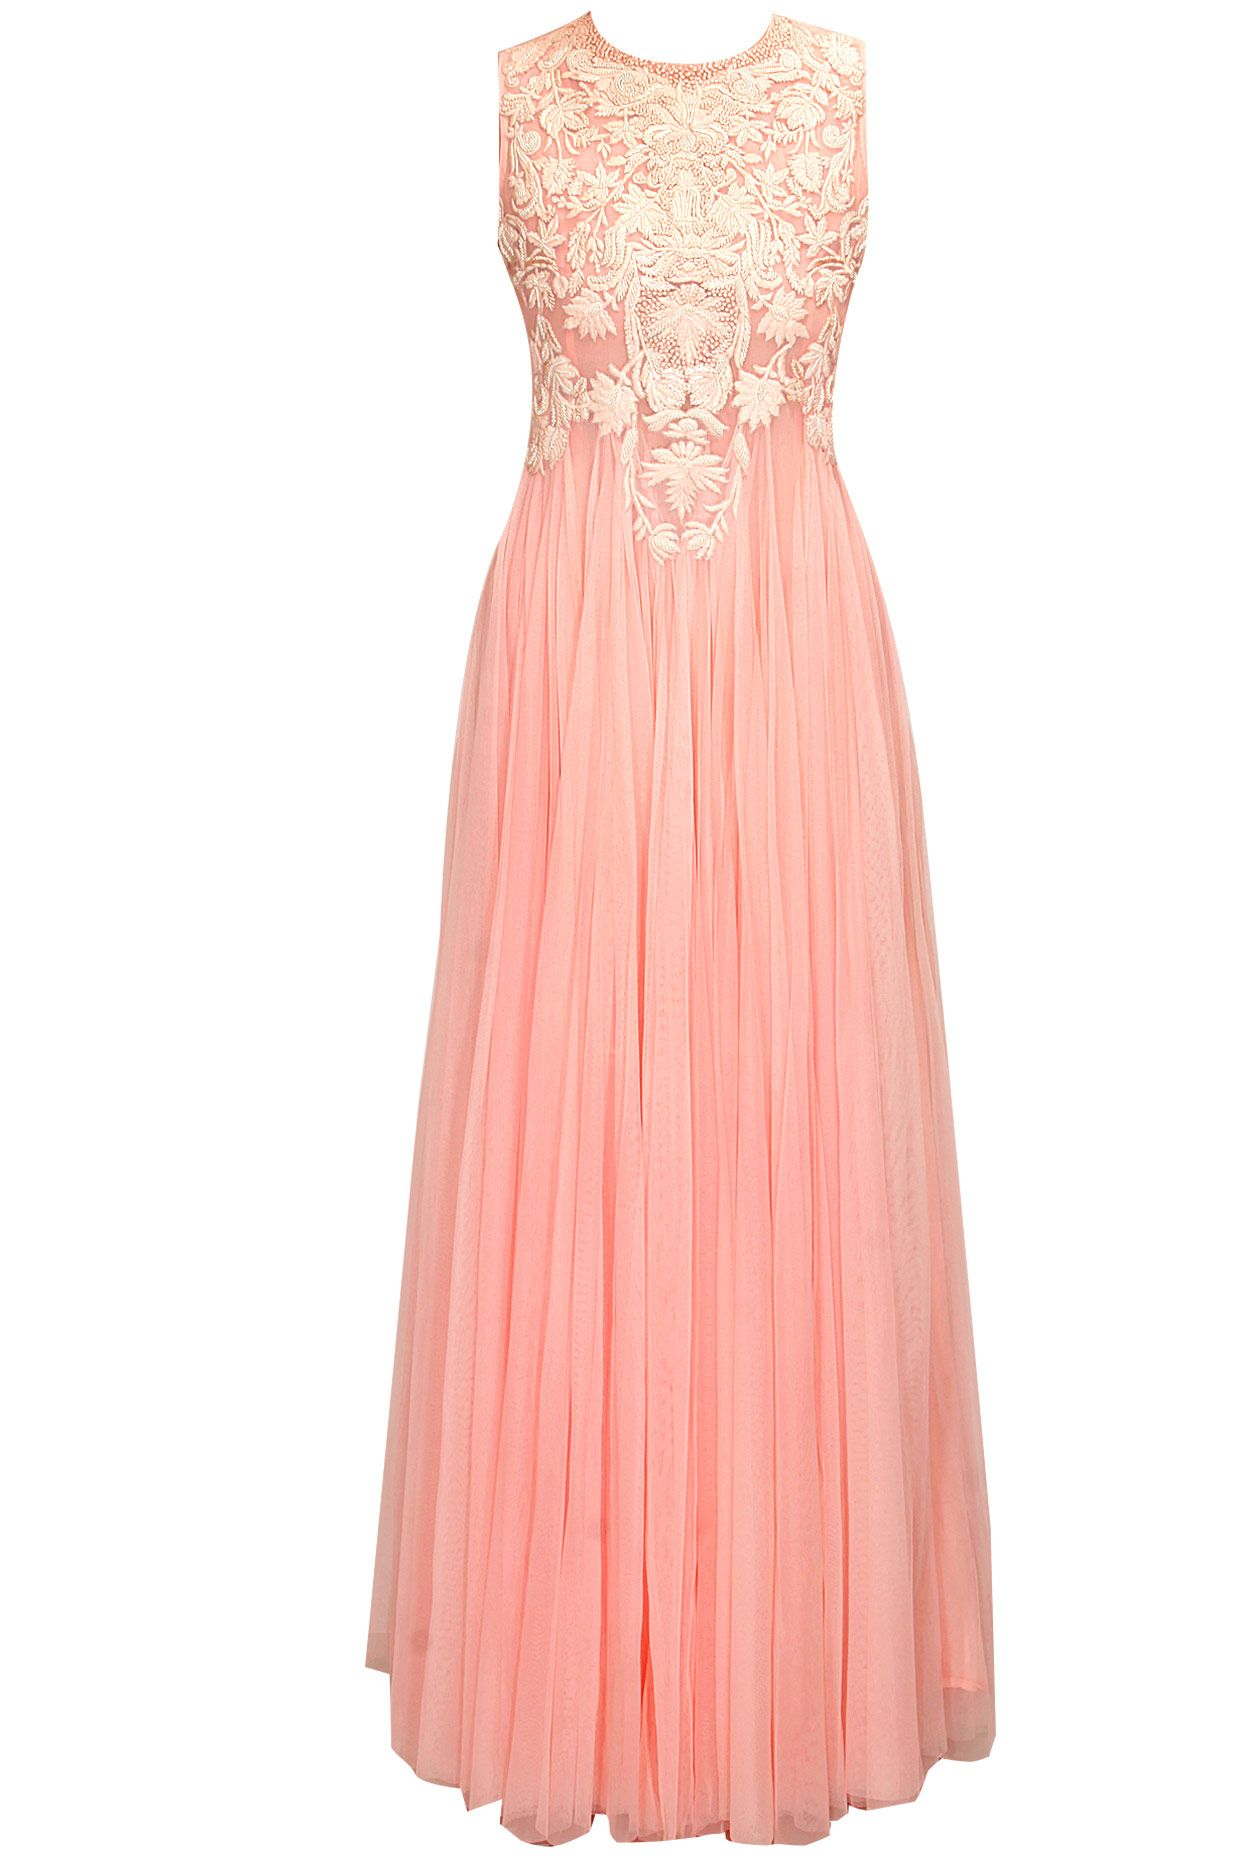 Blush pink floral thread embroidered flared gown by samant chauhan